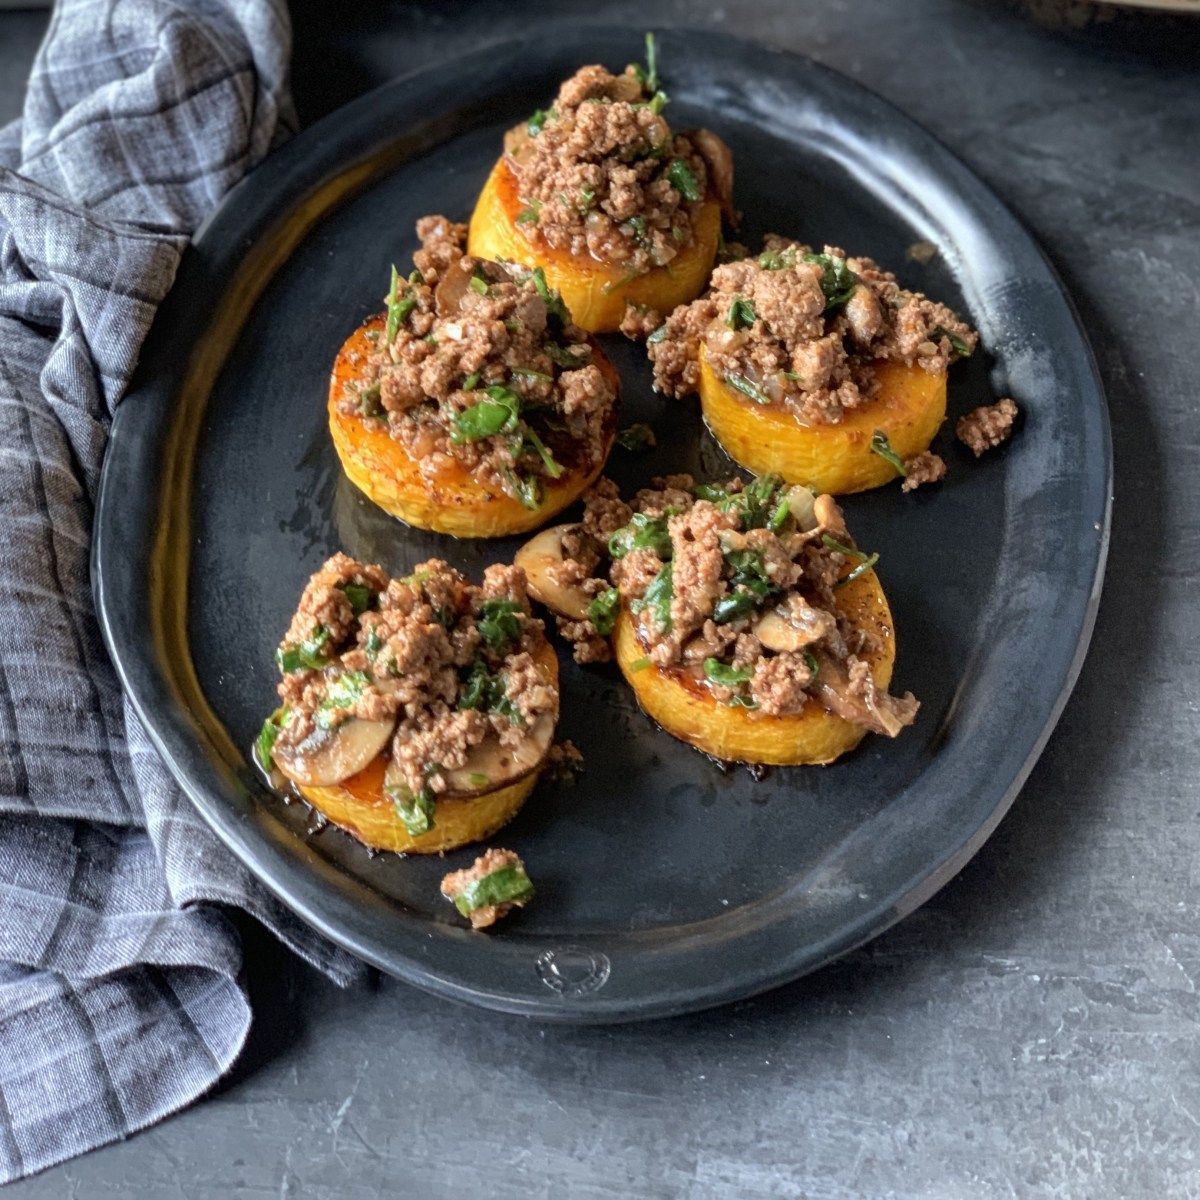 Whole30 Roasted Butternut Squash With Ground Sirloin Recipe